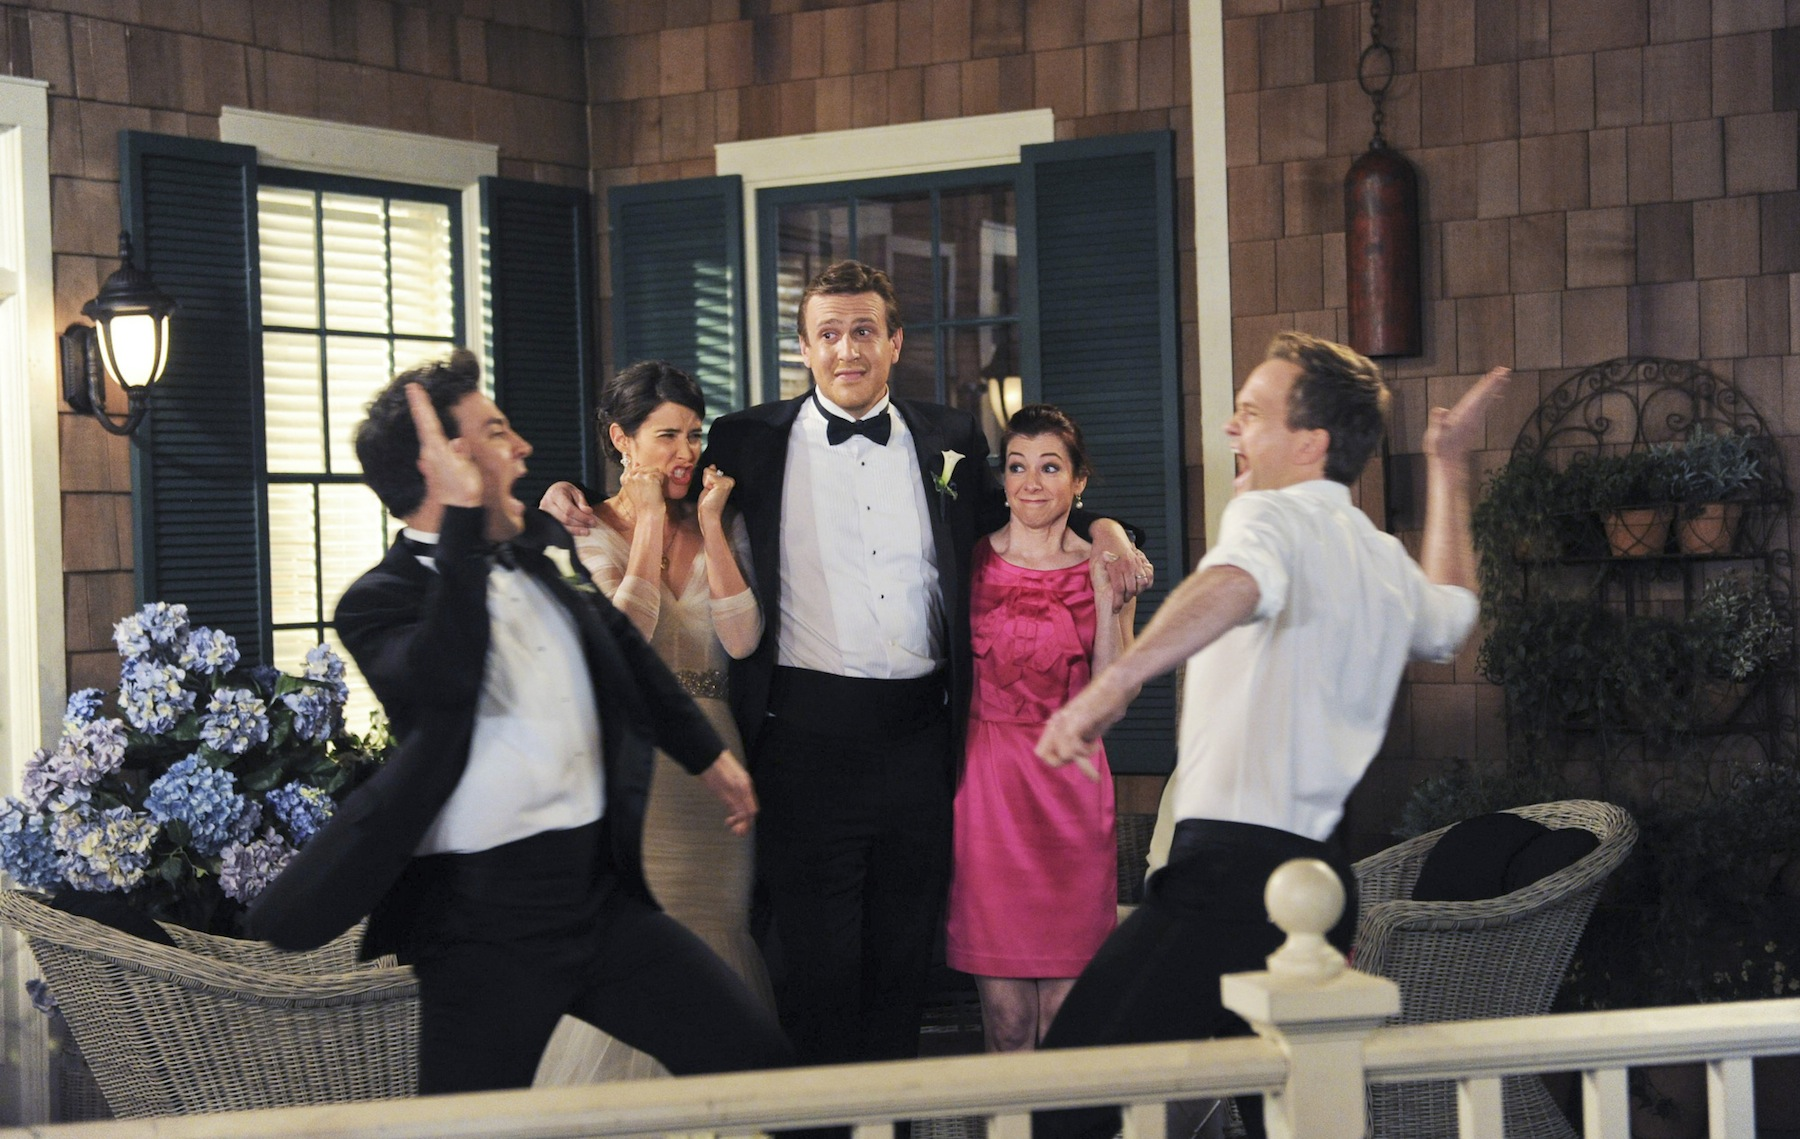 Josh Radnor as Ted, Cobie Smulders as Robin, Jason Segel as Marshall, Alyson Hannigan as Lily, and Neil Patrick Harris as Barney